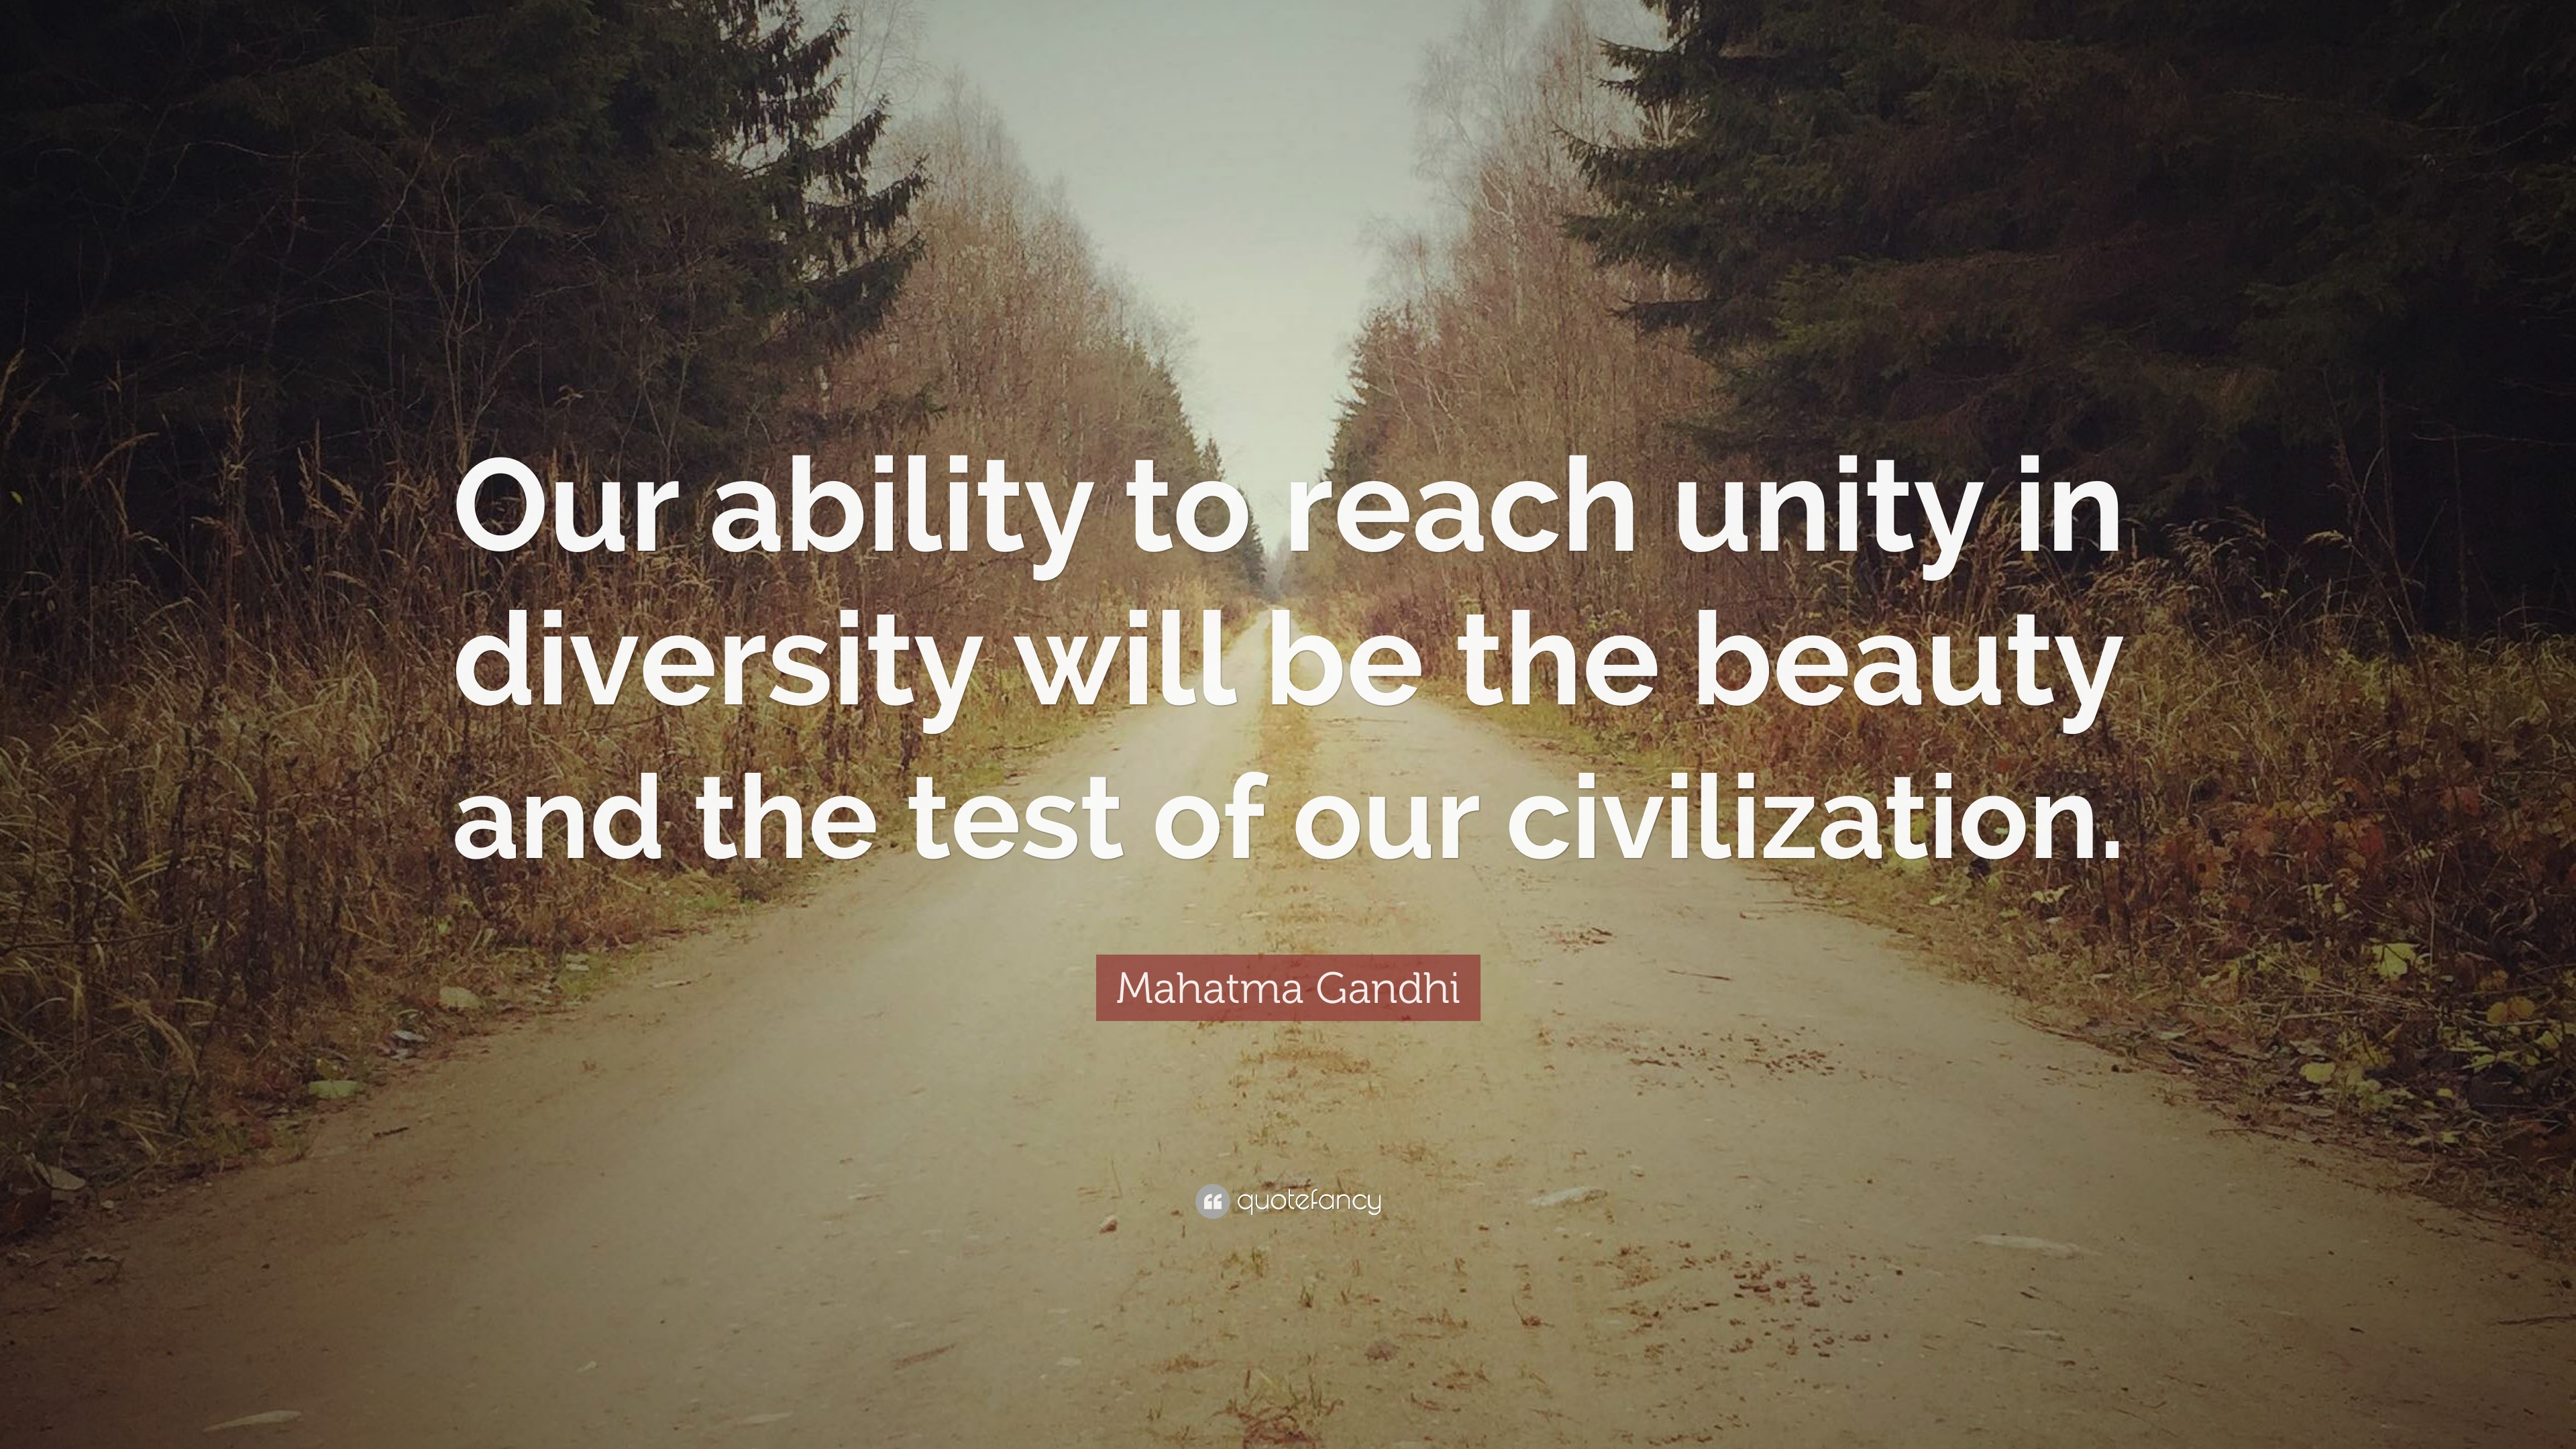 Quotes By Gandhi On Unity : Mahatma gandhi quote our ability to reach unity in